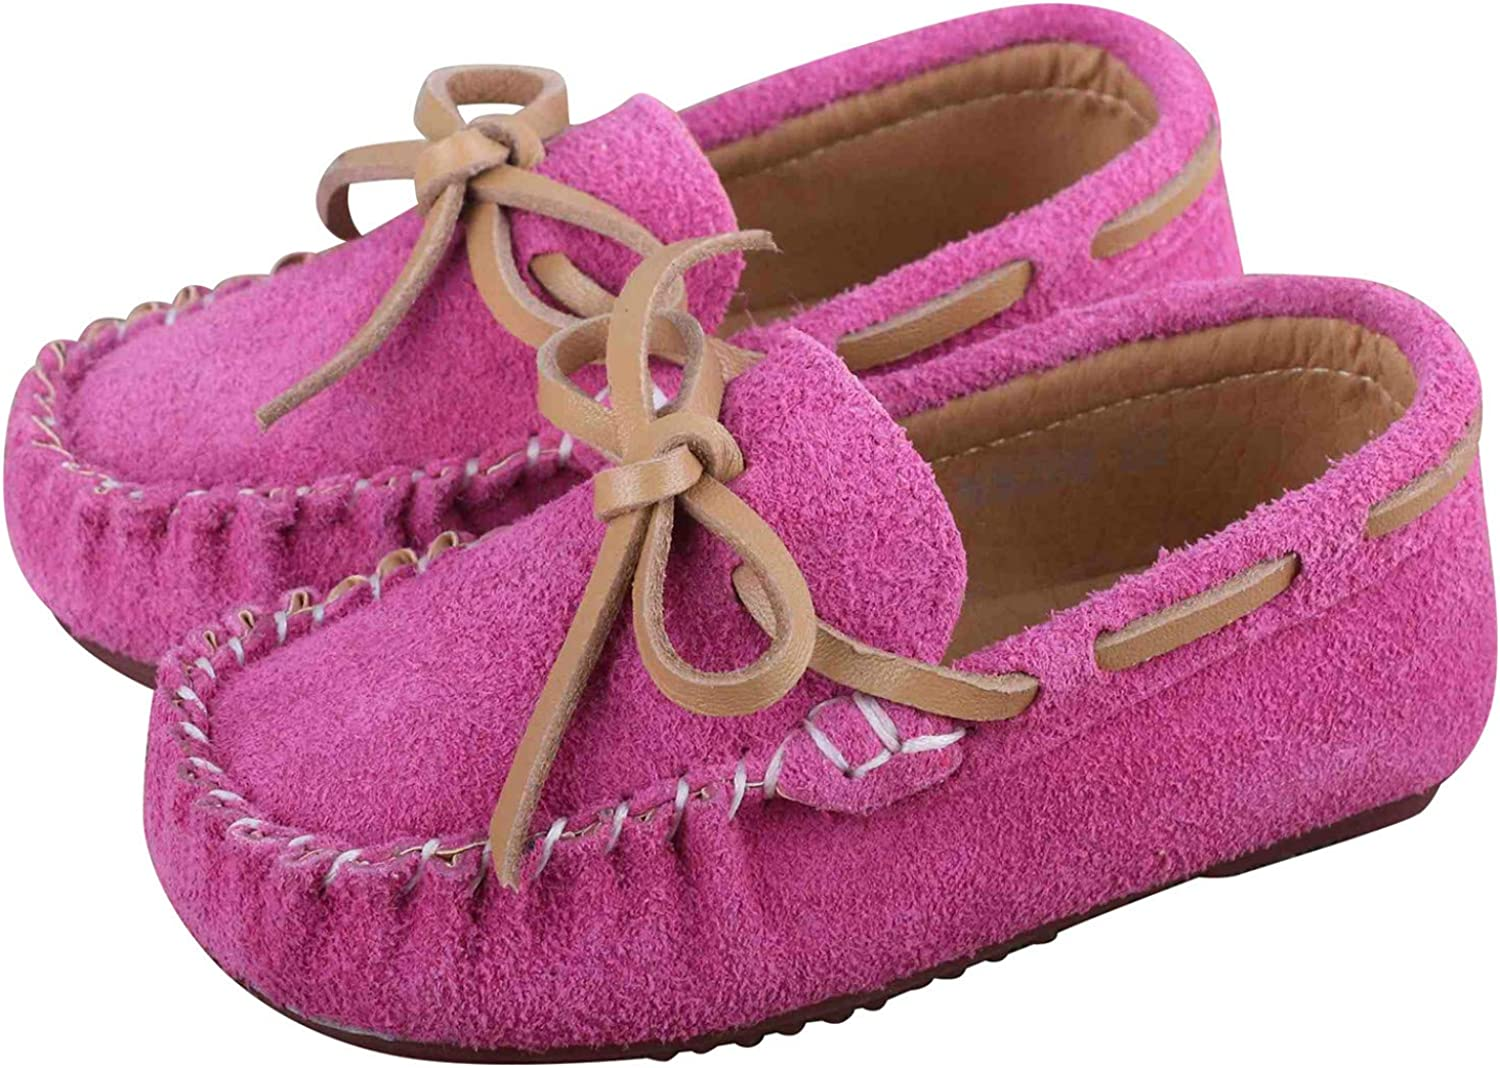 Jacksonville Mall Toddler Boy's Girl's Suede Moccasin S Loafers Flats Boat Leather Manufacturer OFFicial shop